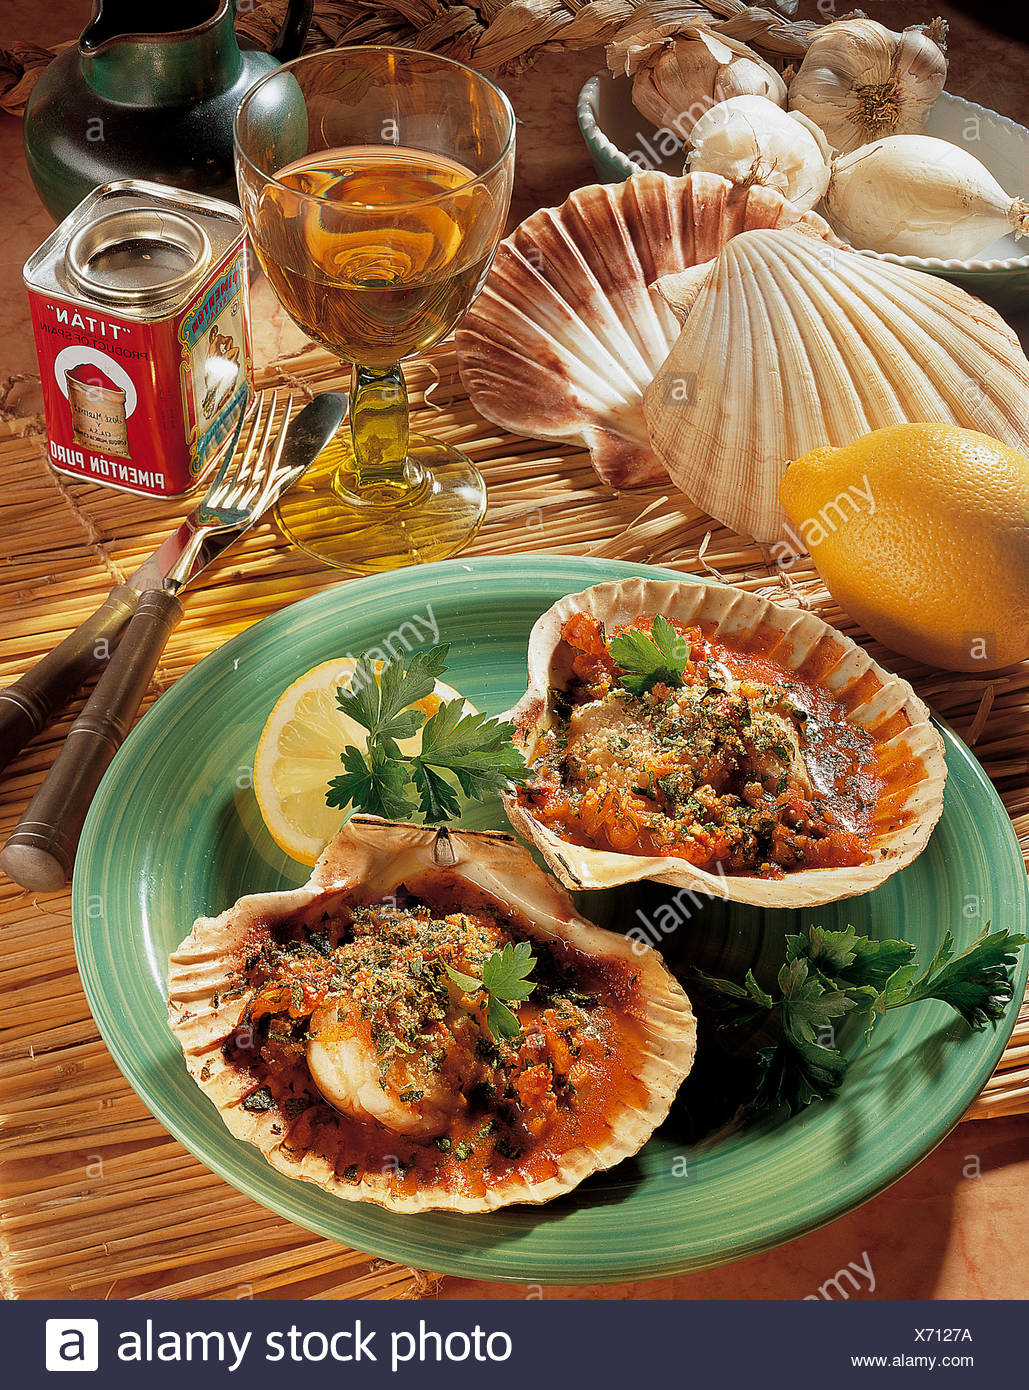 Scallop gratin, Spain, recipe available for a fee - Stock Image